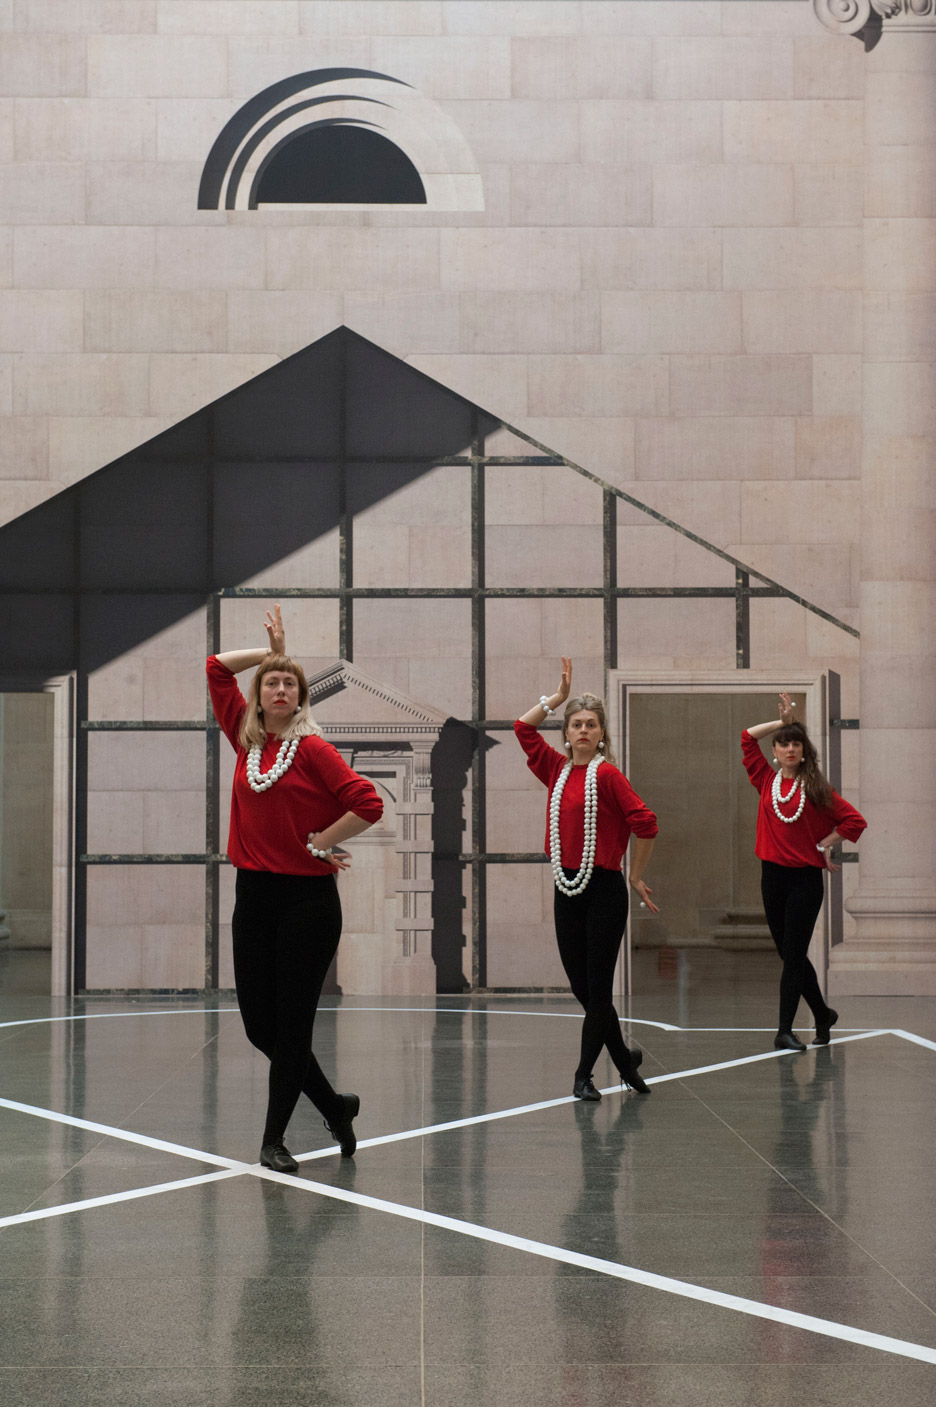 historical-dances-in-an-antique-setting-pablo-bronstein-choreography-_dezeen_936_0